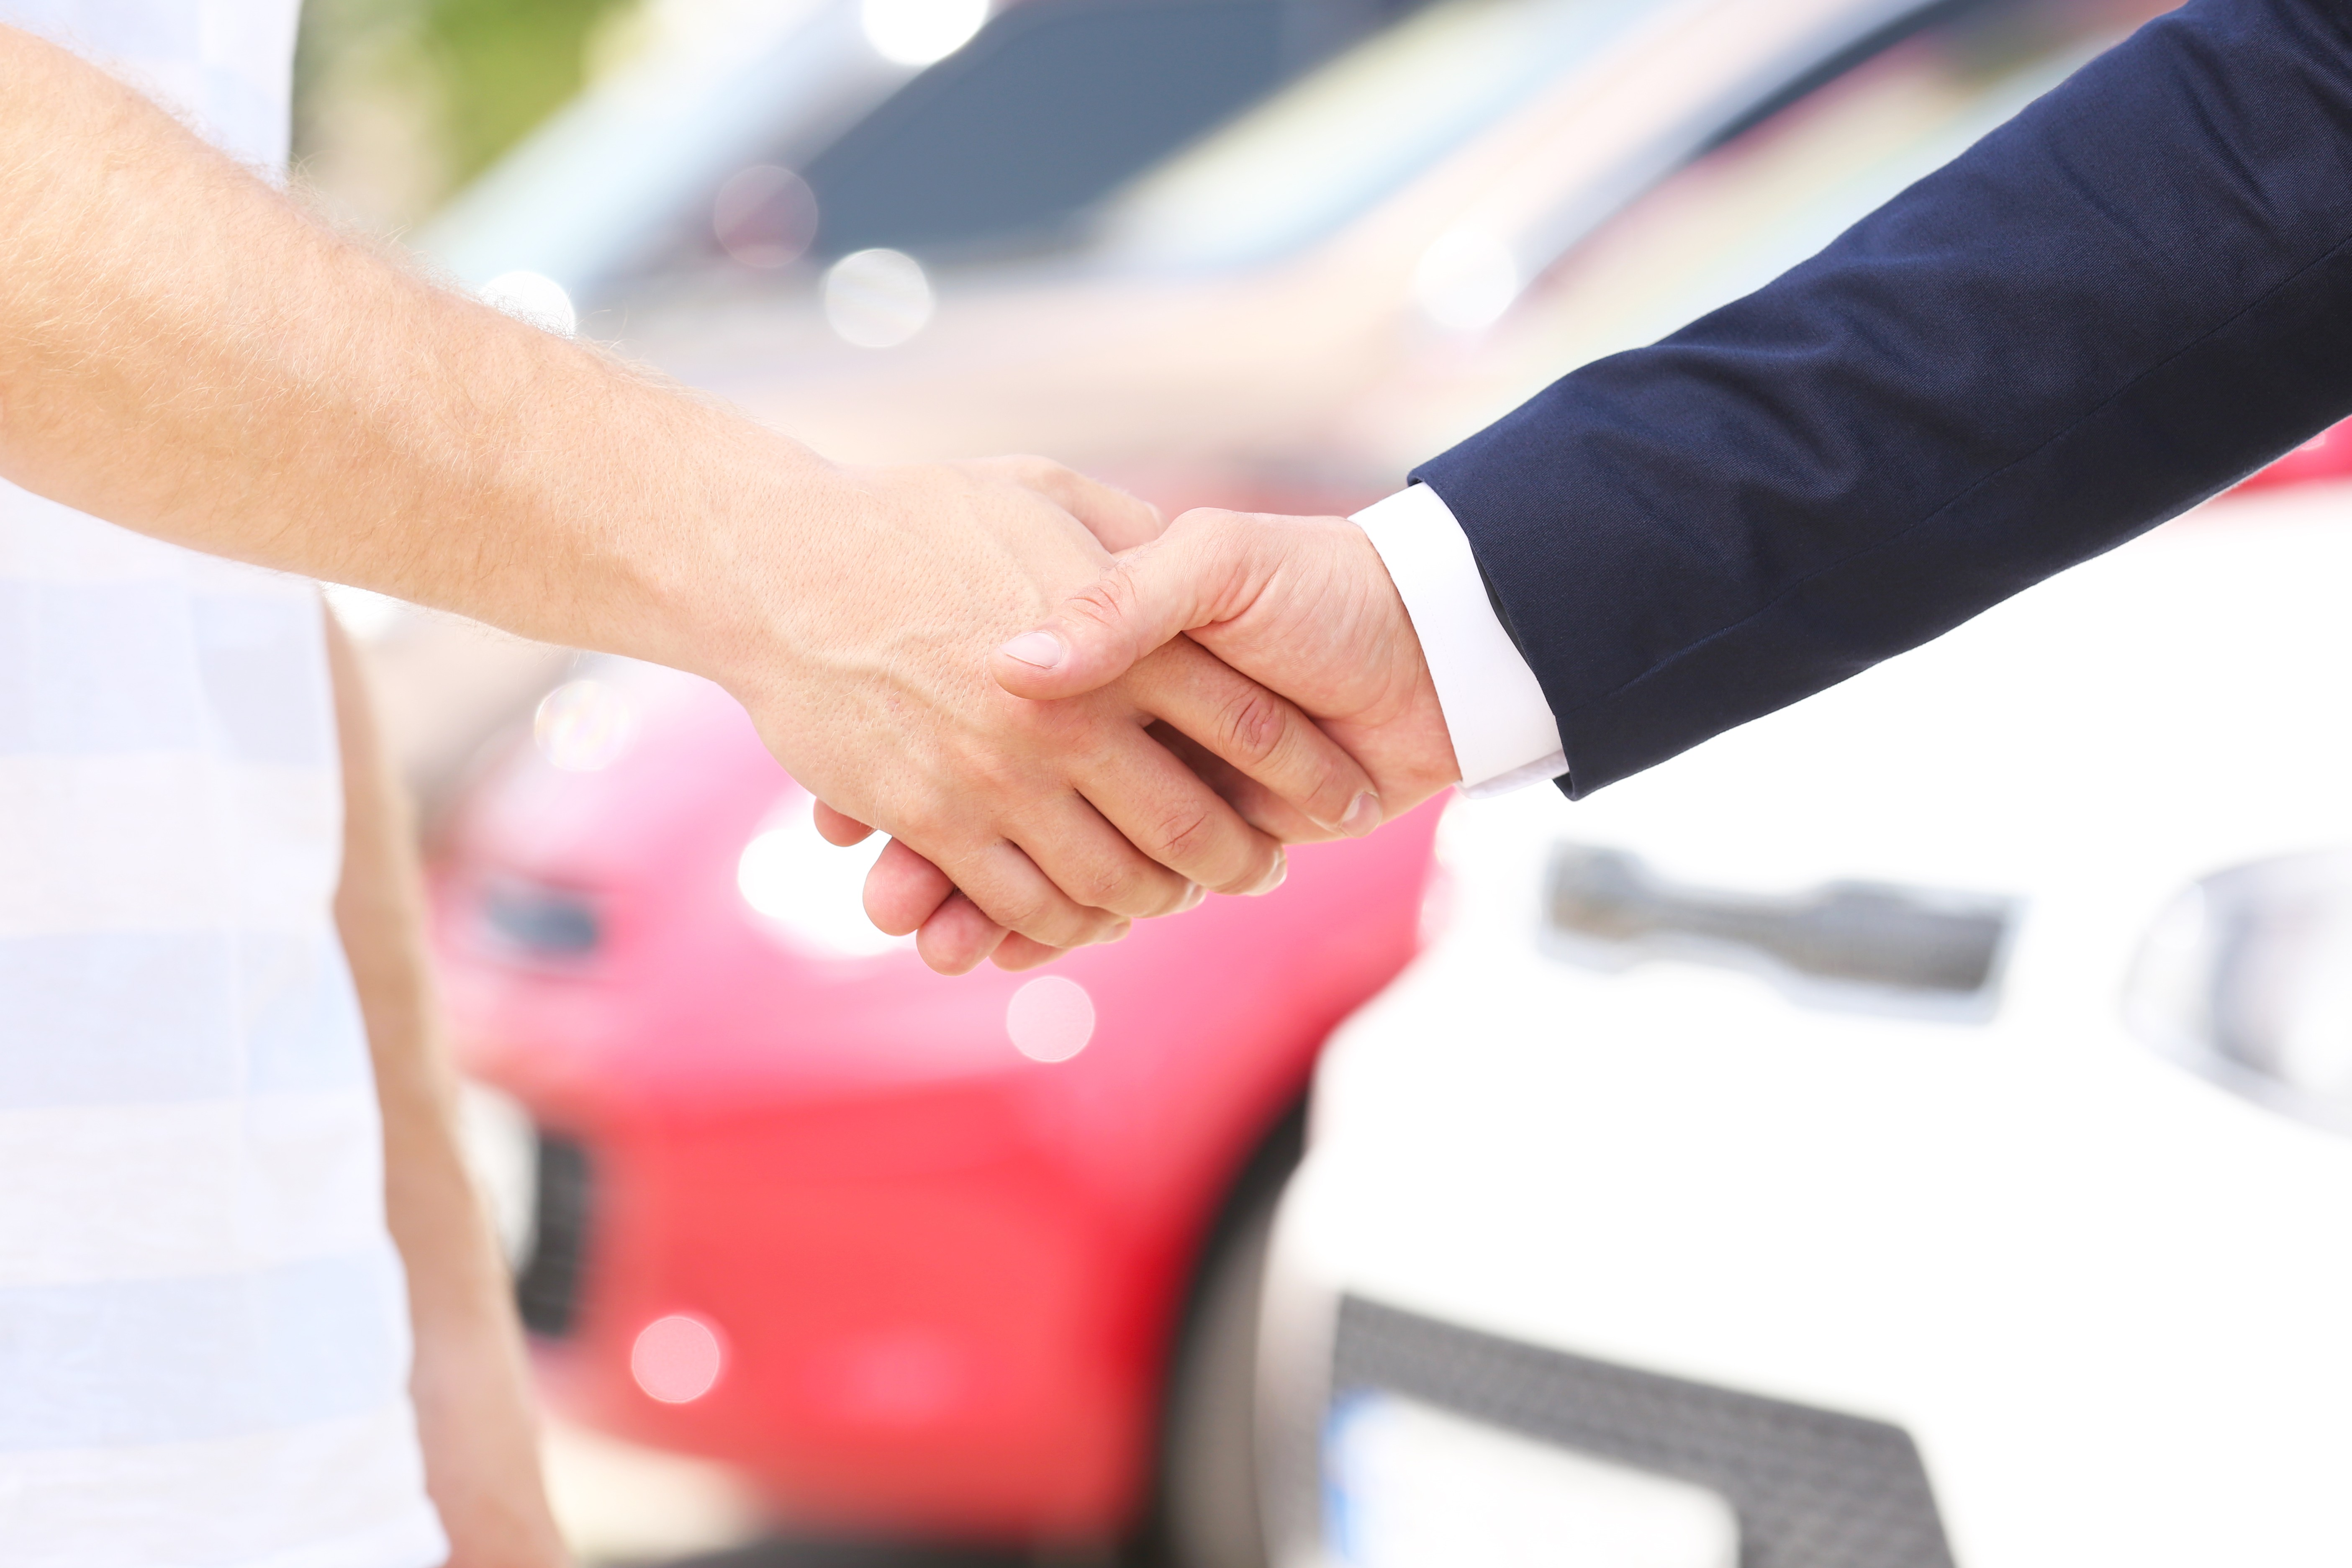 How Do You Close the Deal When Selling Your Used Car